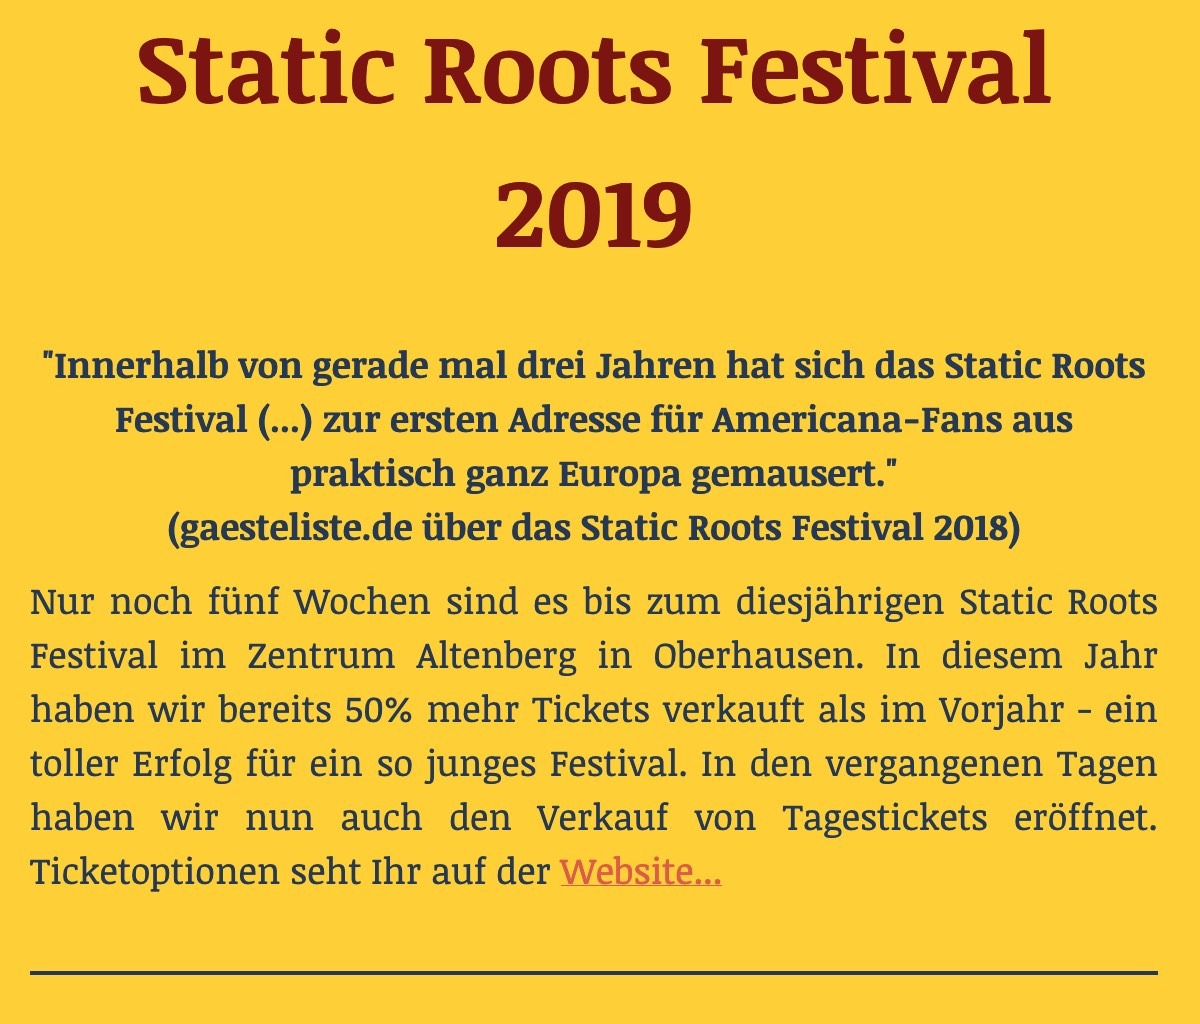 Static Roots Festival 2019 Newsletter #2